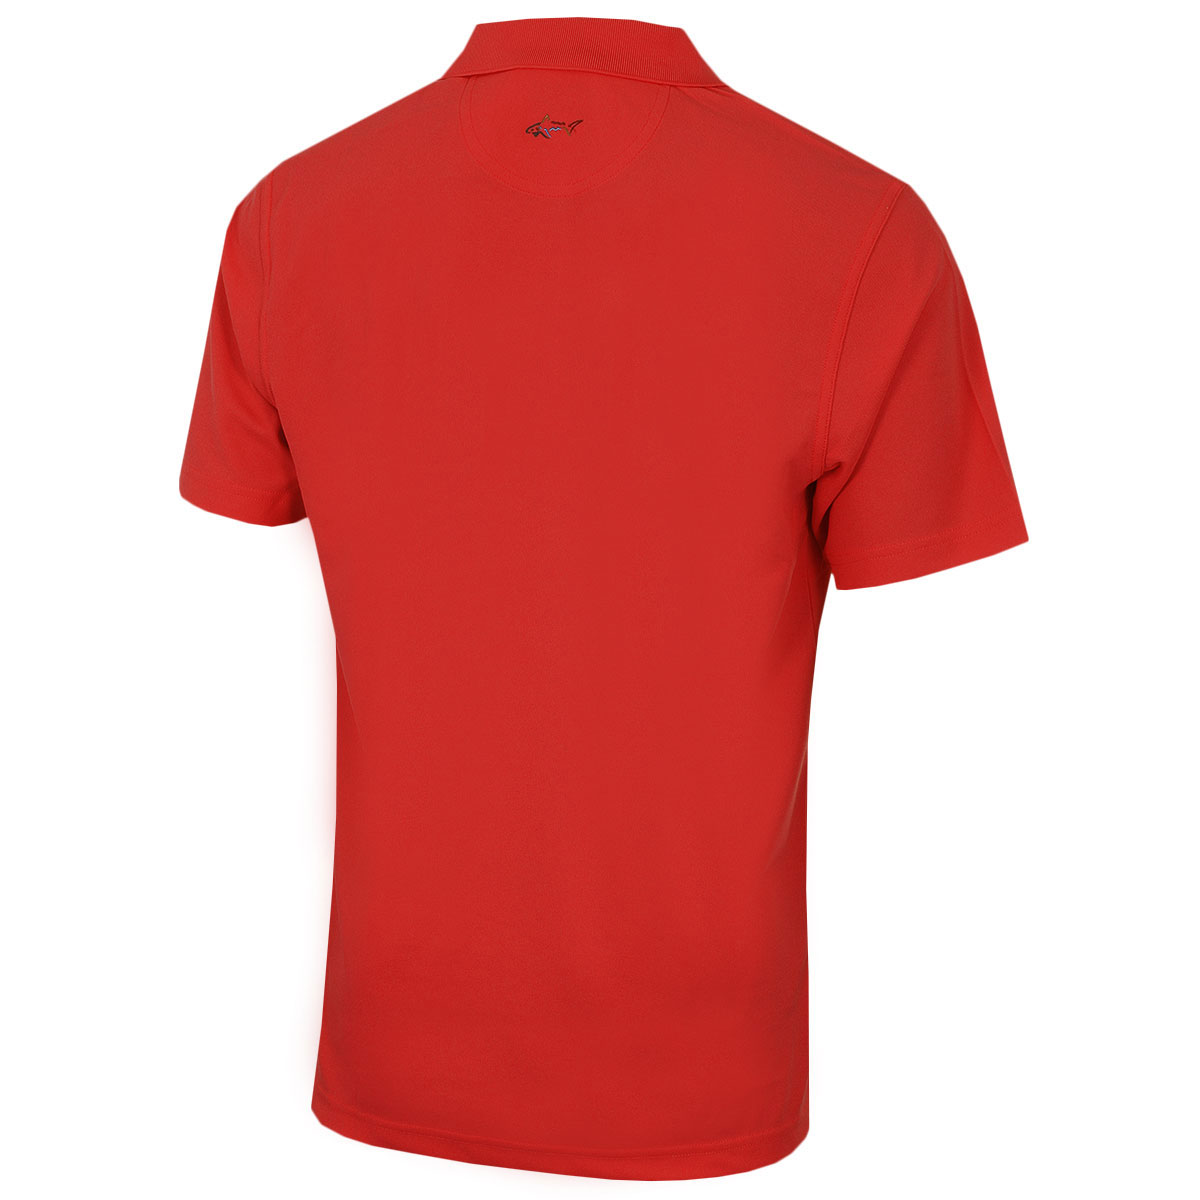 Greg-Norman-Mens-KX04-Performance-Micro-Pique-Golf-Polo-Shirt-28-OFF-RRP thumbnail 12